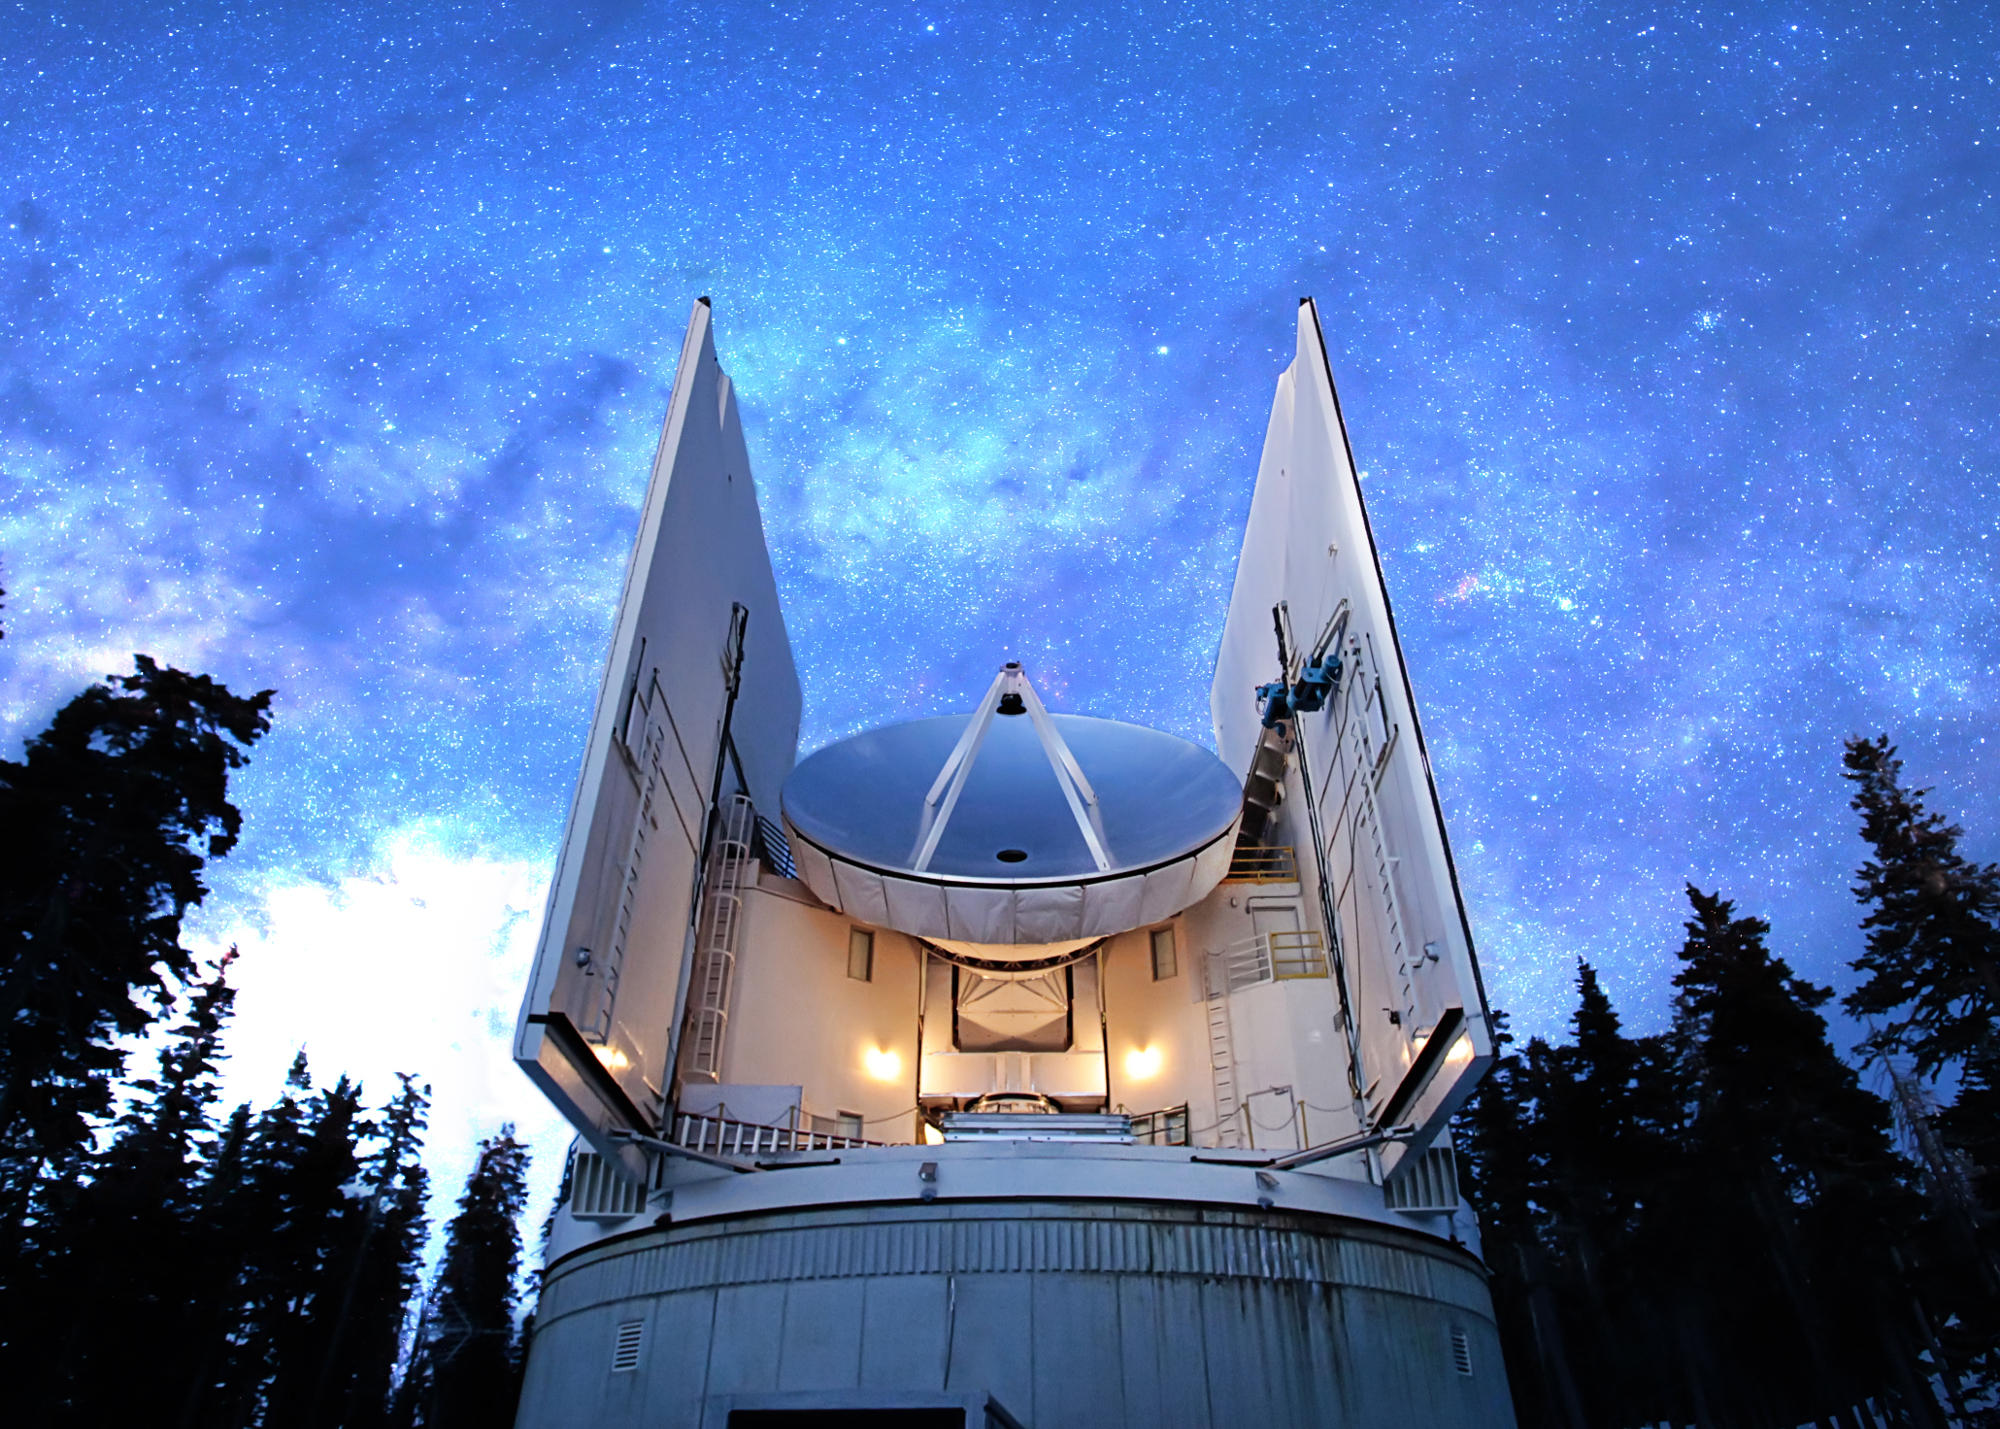 The Submillimeter Telescope under the night sky.